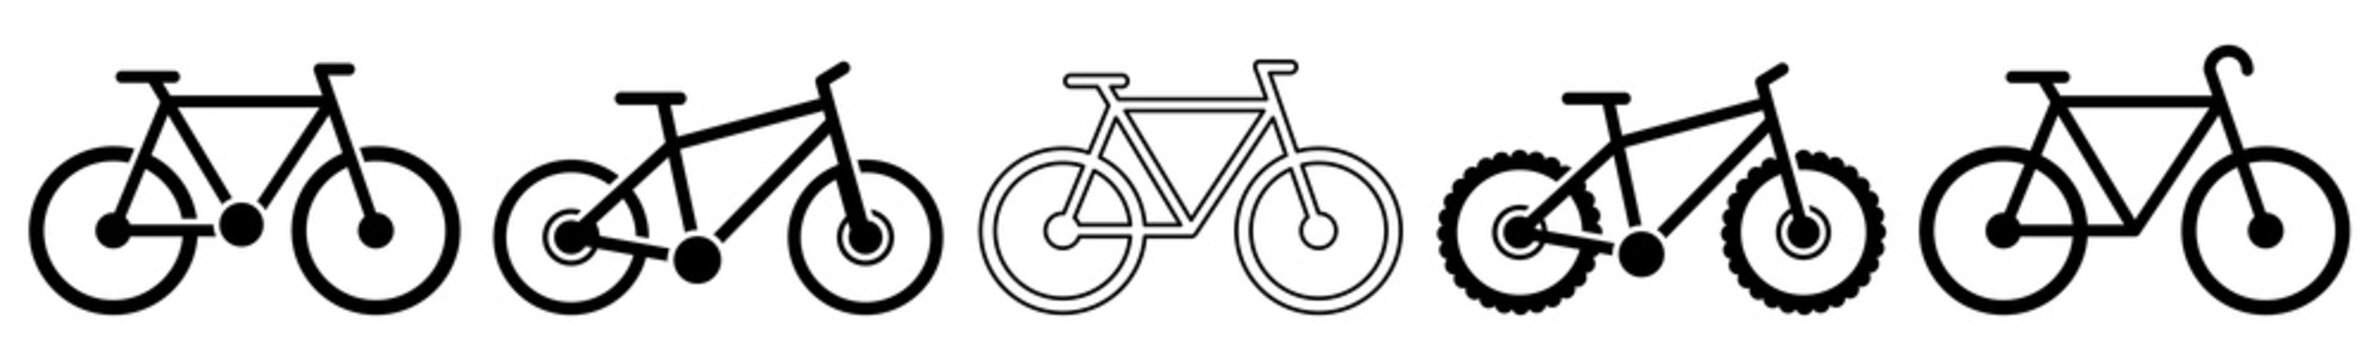 Bicycle Icon Riding Bicycle Set | Bicycles Icon Bike Vector Illustration Logo | Racing Bicycle Mountain Bicycle Icon Isolated Cycle Collection